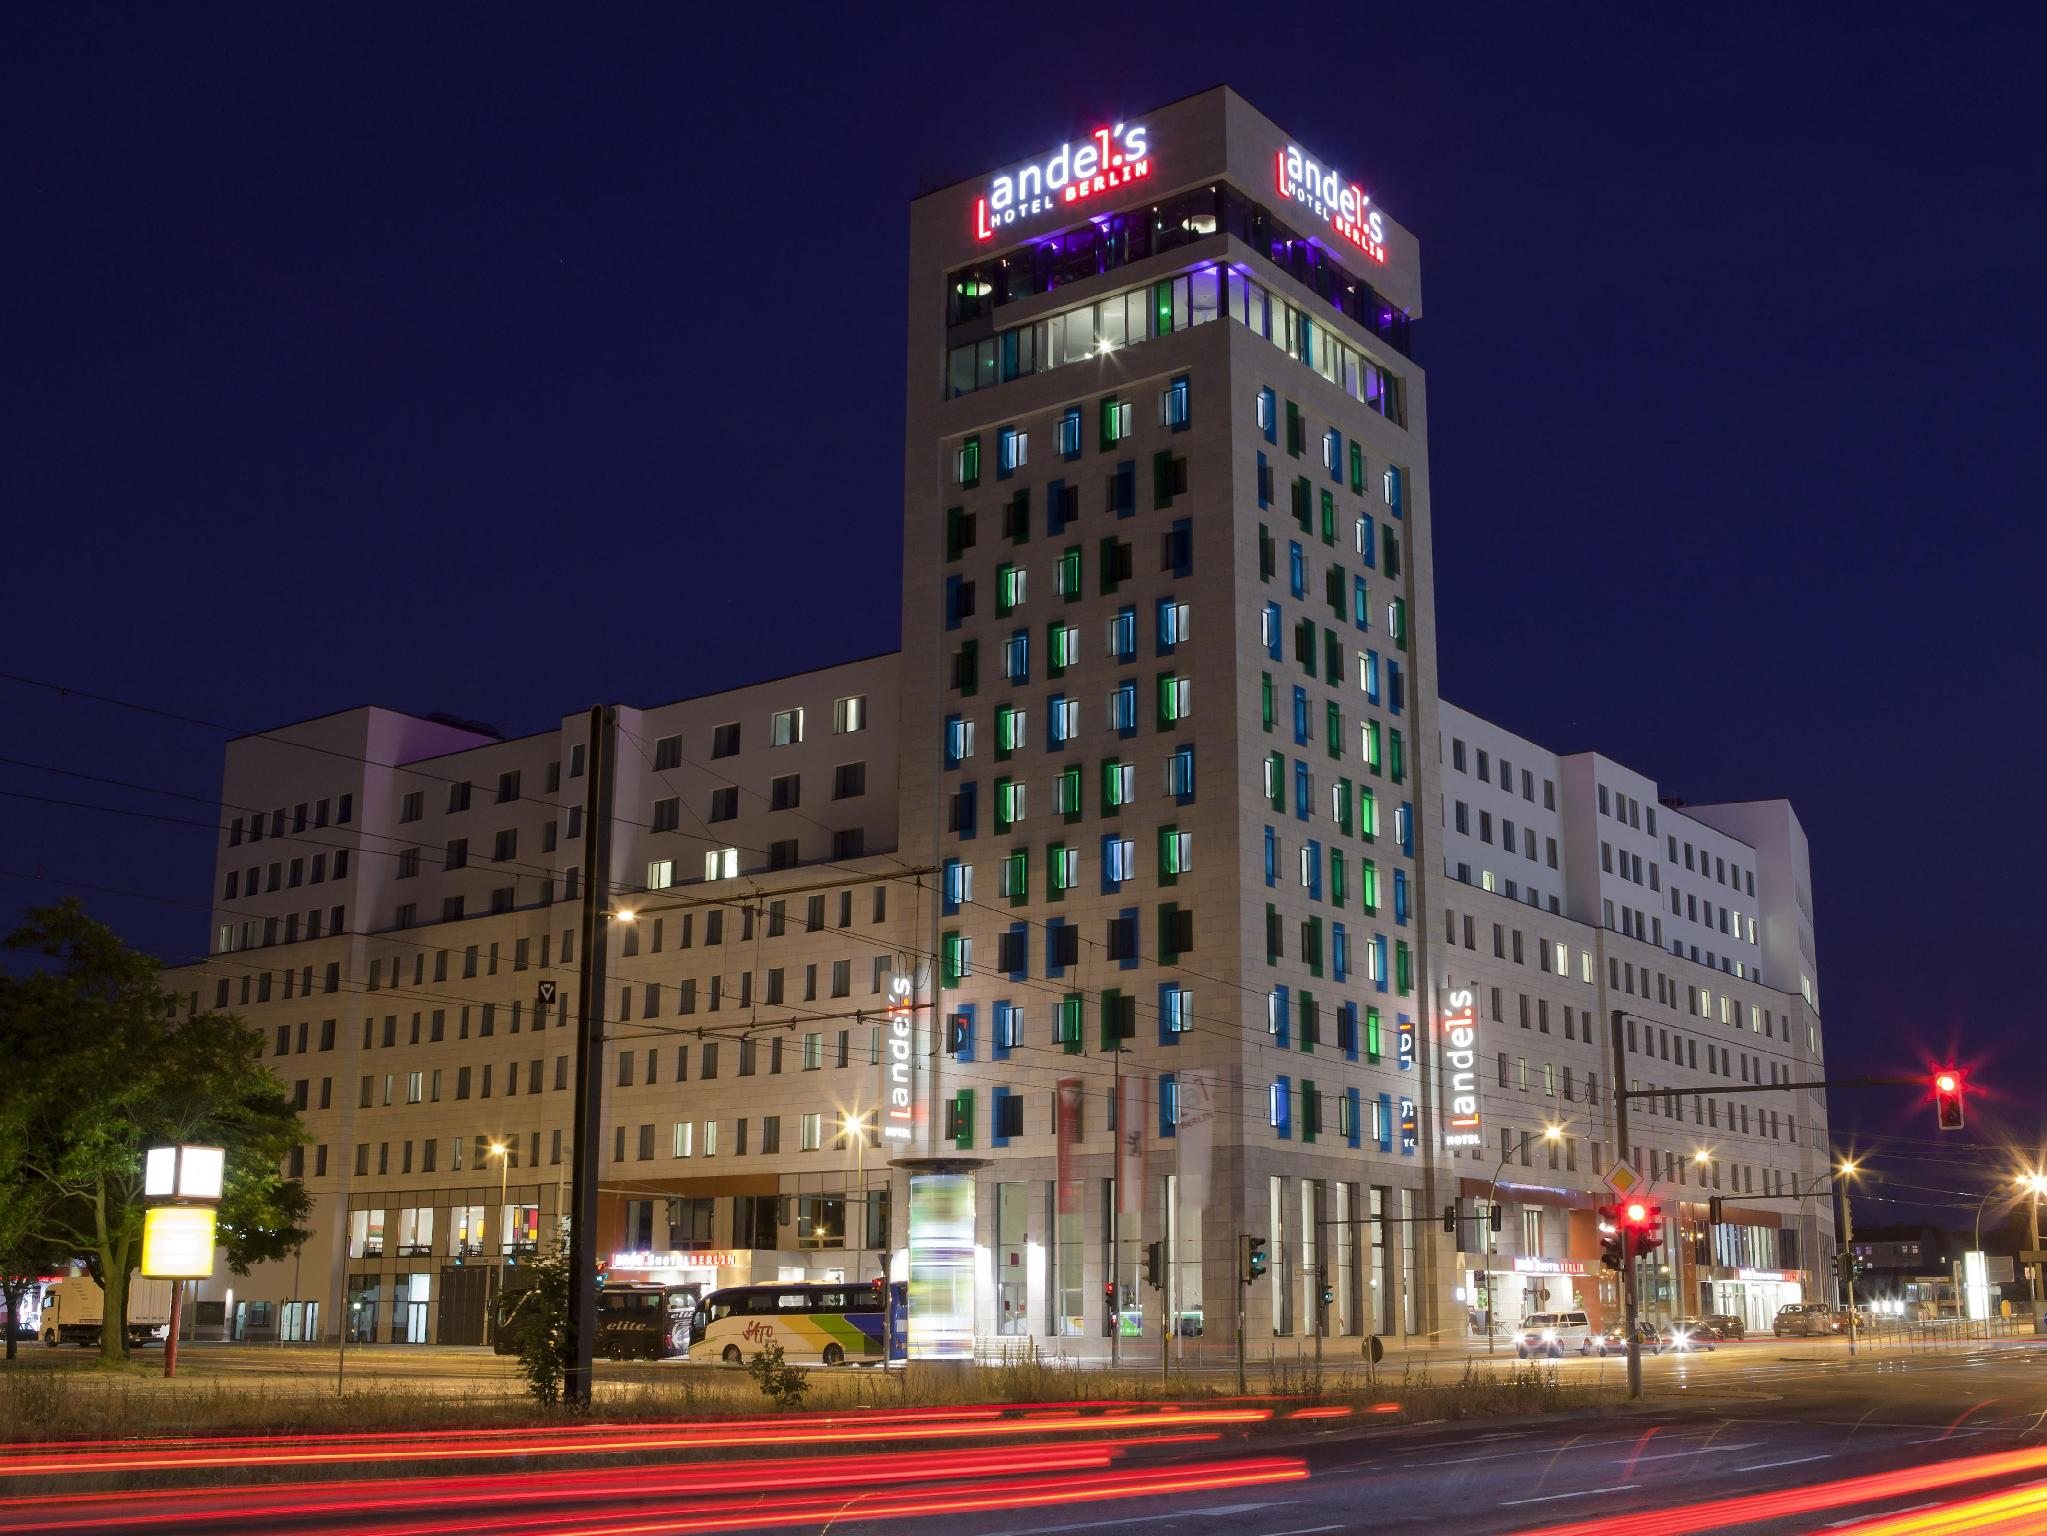 andel's Hotel Berlin, managed by Vienna International Hotels and Resorts बर्लिन